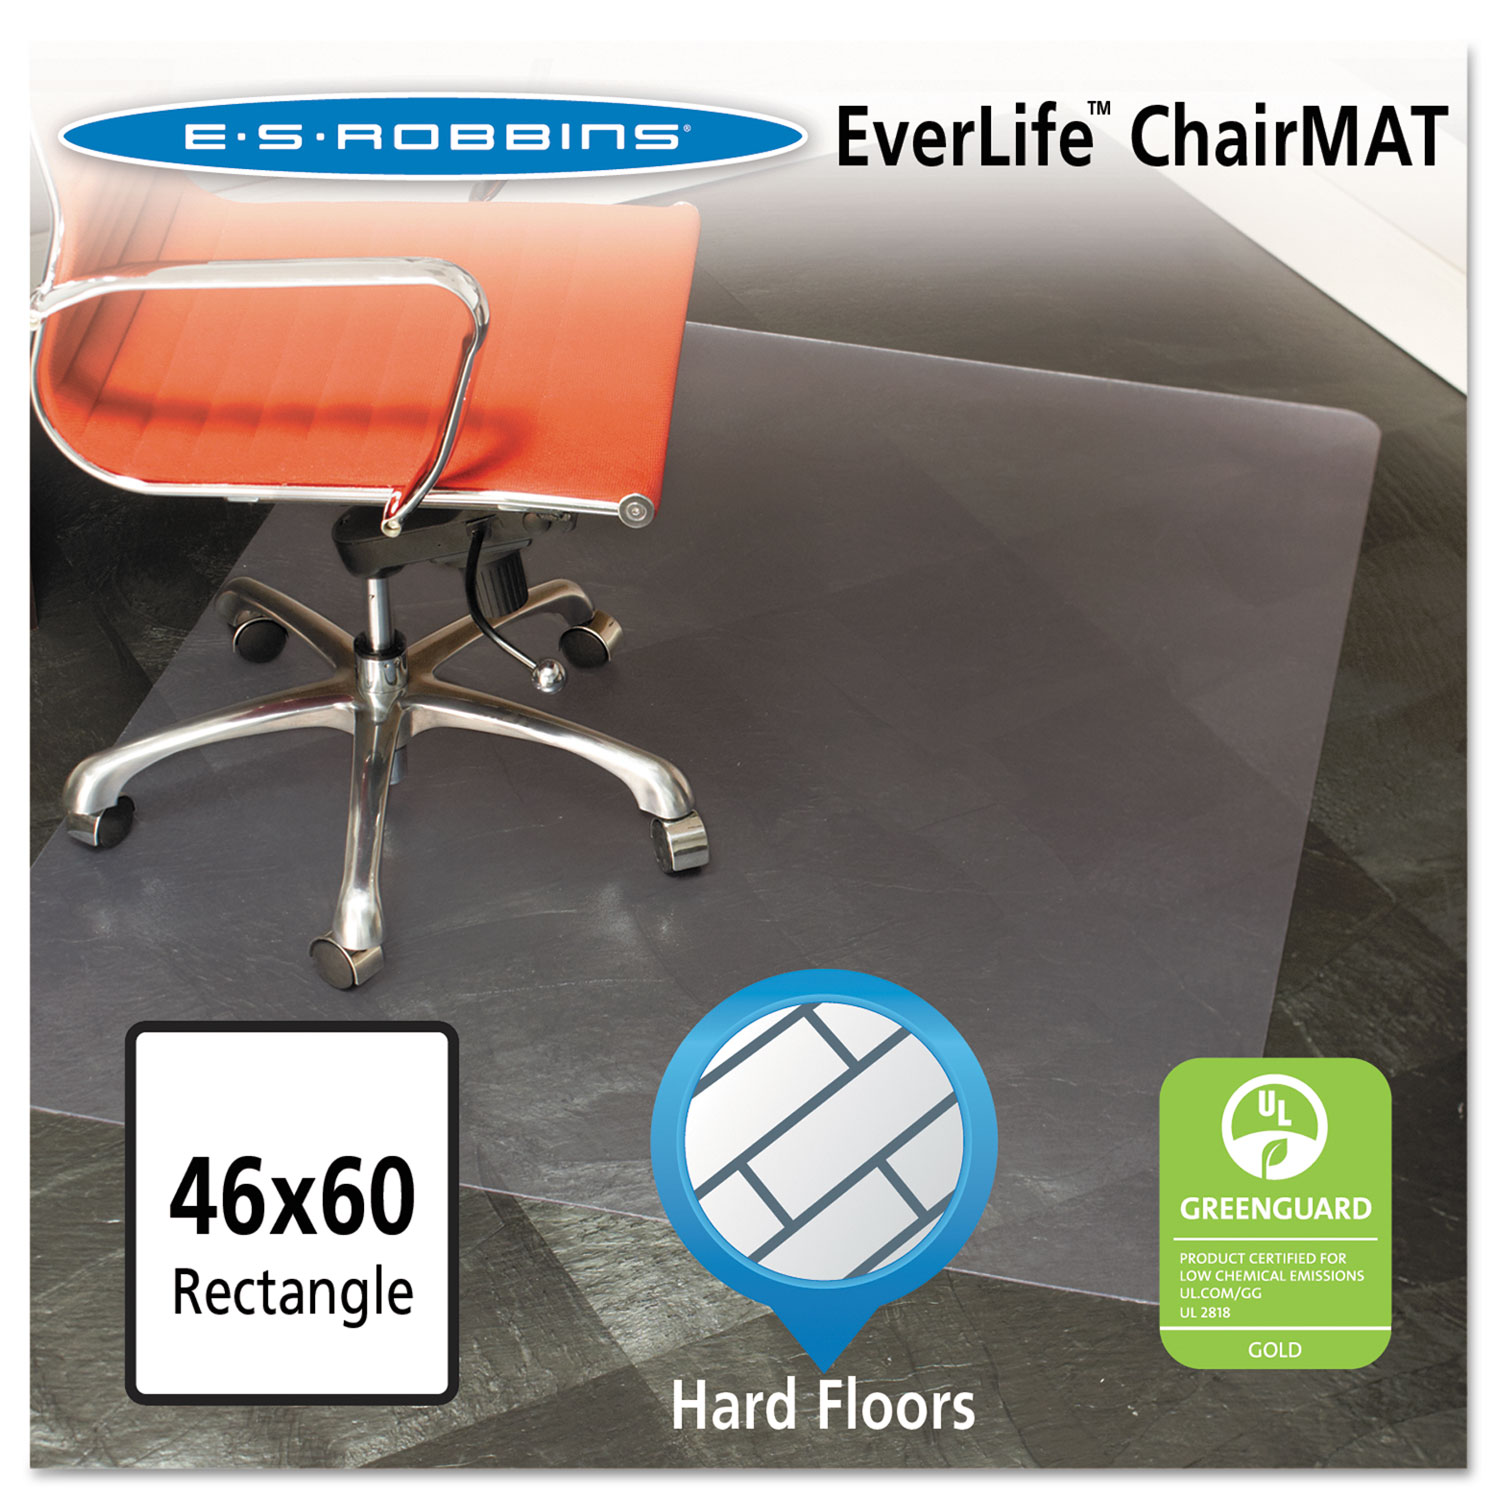 46x60 rectangle chair mat by es robbinsa esr132321